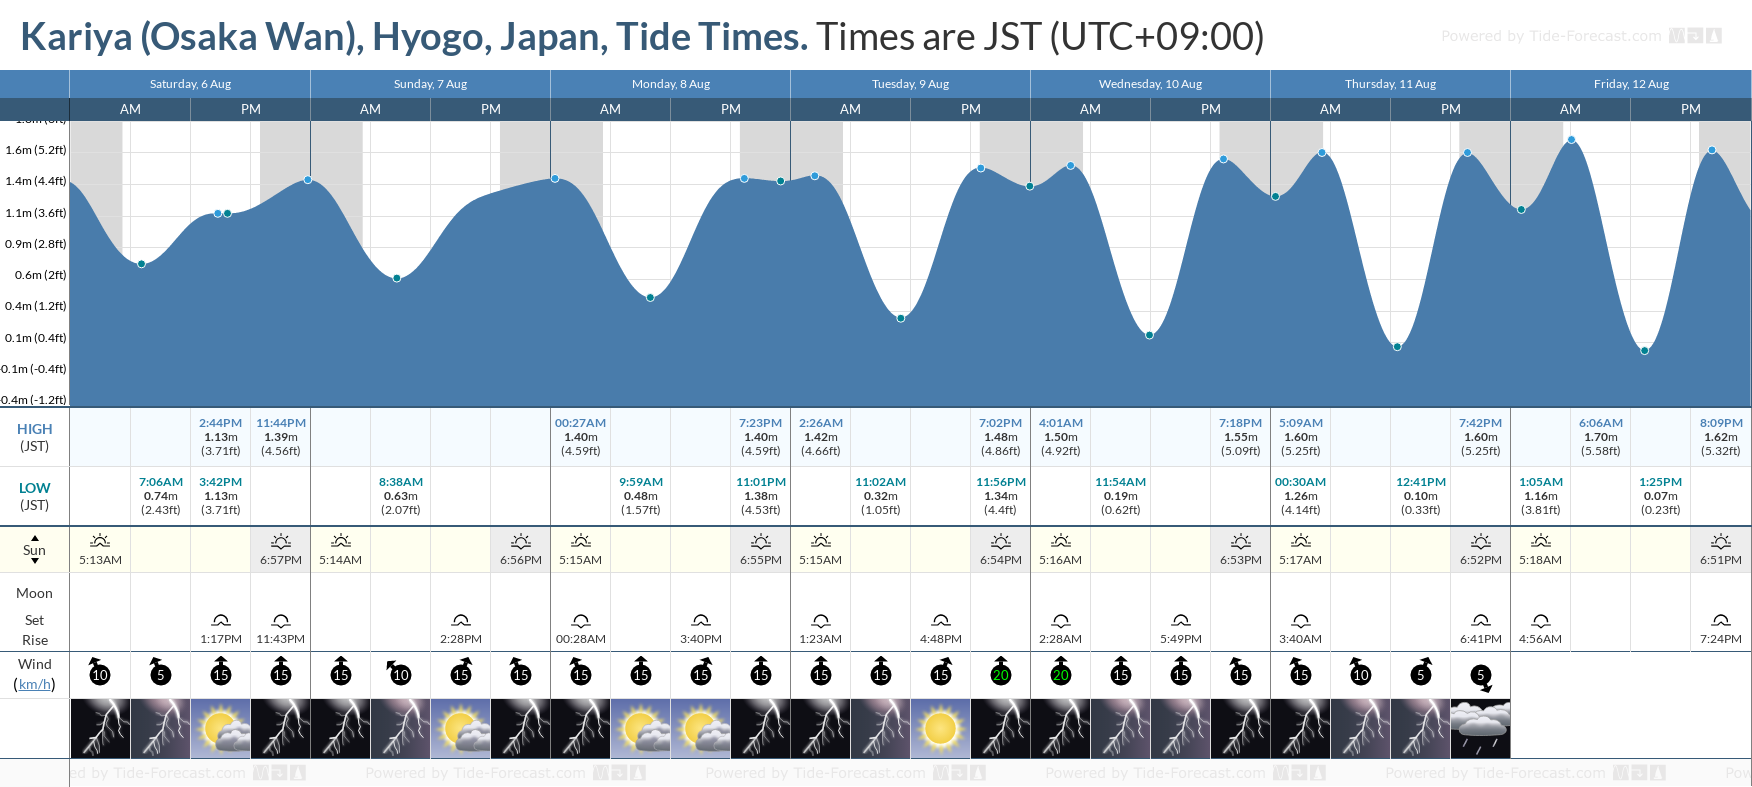 Kariya (Osaka Wan), Hyogo, Japan Tide Chart including high and low tide tide times for the next 7 days